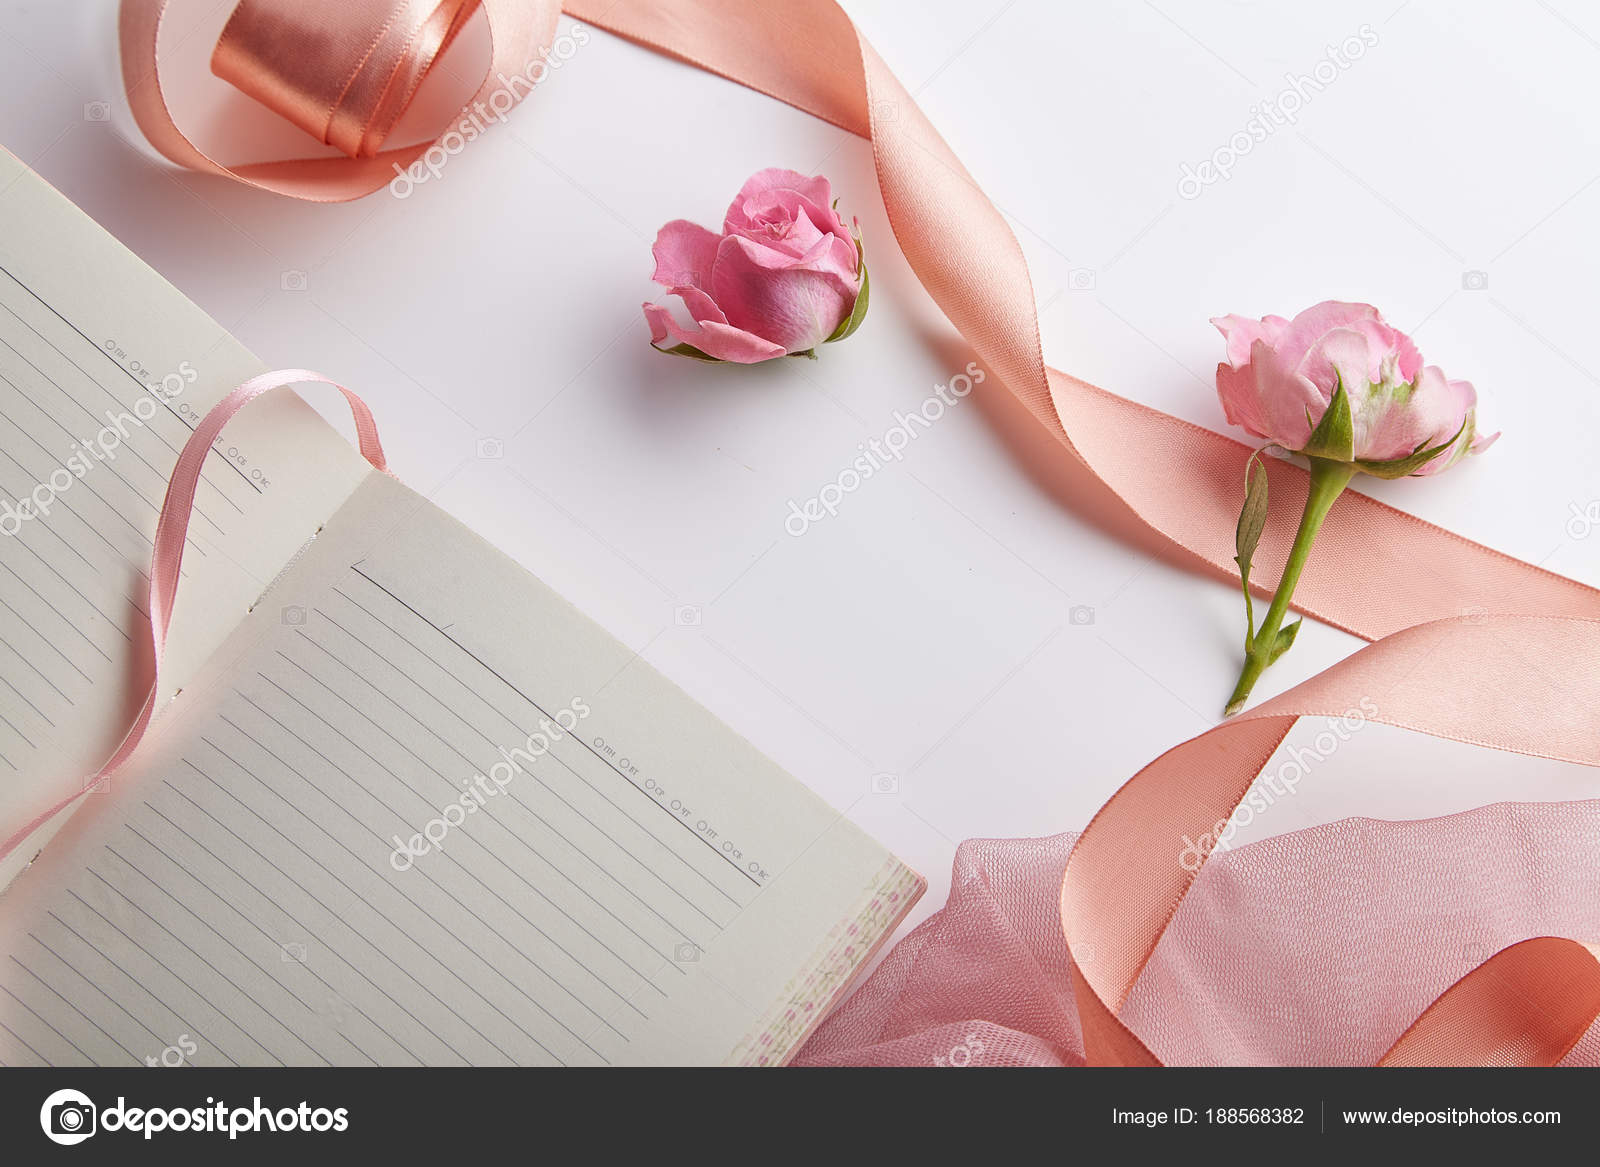 fresh pink shrub roses peach colored ribbon opened empty notebook